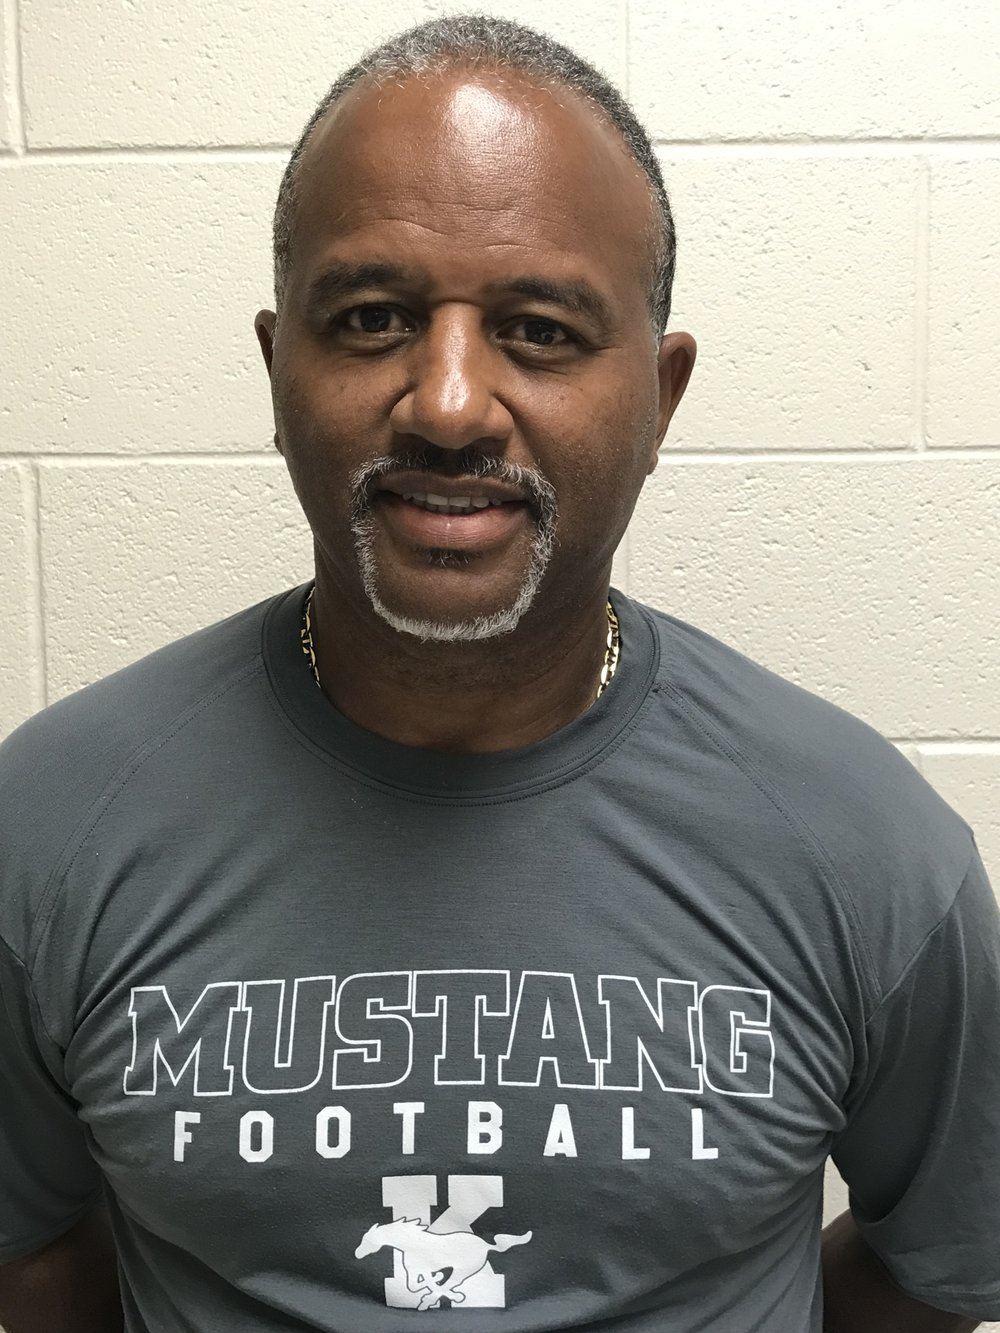 Kevin PenaSafeties - Coach Pena enters his 2nd season with the Mustangs. Coach Pena teaches in the Educational Support department at KMHS. Prior to coming to the Mountain, Coach Pena was the Assist Head Coach / Def. Coordinator / Secondary Coach at Whitefield Academy. Coach Pena has also coached at Allatoona High, North Kingston (RI) and Southern Connecticut State University. He also the Defensive Coordinator of the Boys Lacrosse program here at KMHS. Coach Pena played football at LaSalle Academy were he earned the 1978- FIRST TEAM ALL-STATE DB) He also played defensive back at AIC (1978-1982) were he was a four year starter.Coach Pena and his wife Charmaine have 3 children Kevin Jr, Kiana and Kameron